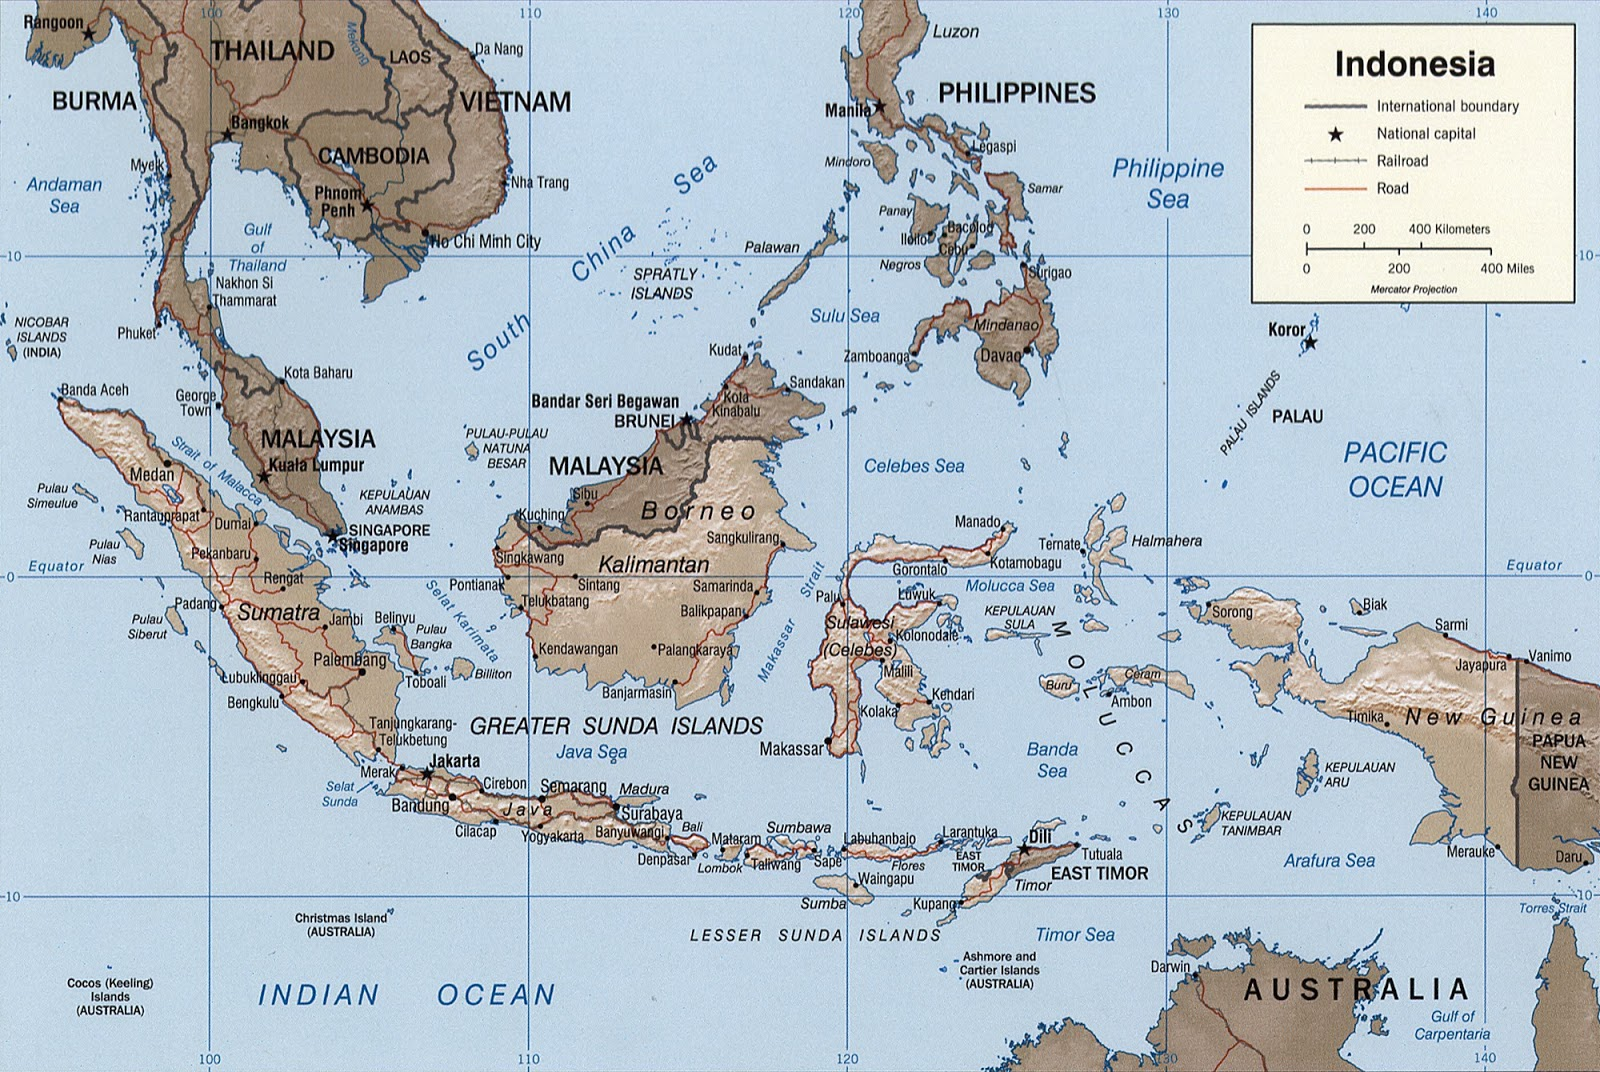 A map of Indonesia showing Wallace's Line in blue. To the west lie islands harboring Asiatic fauna and to the east is Wallacea harboring a mixed Asiatic and Australasian fauna. Lyde